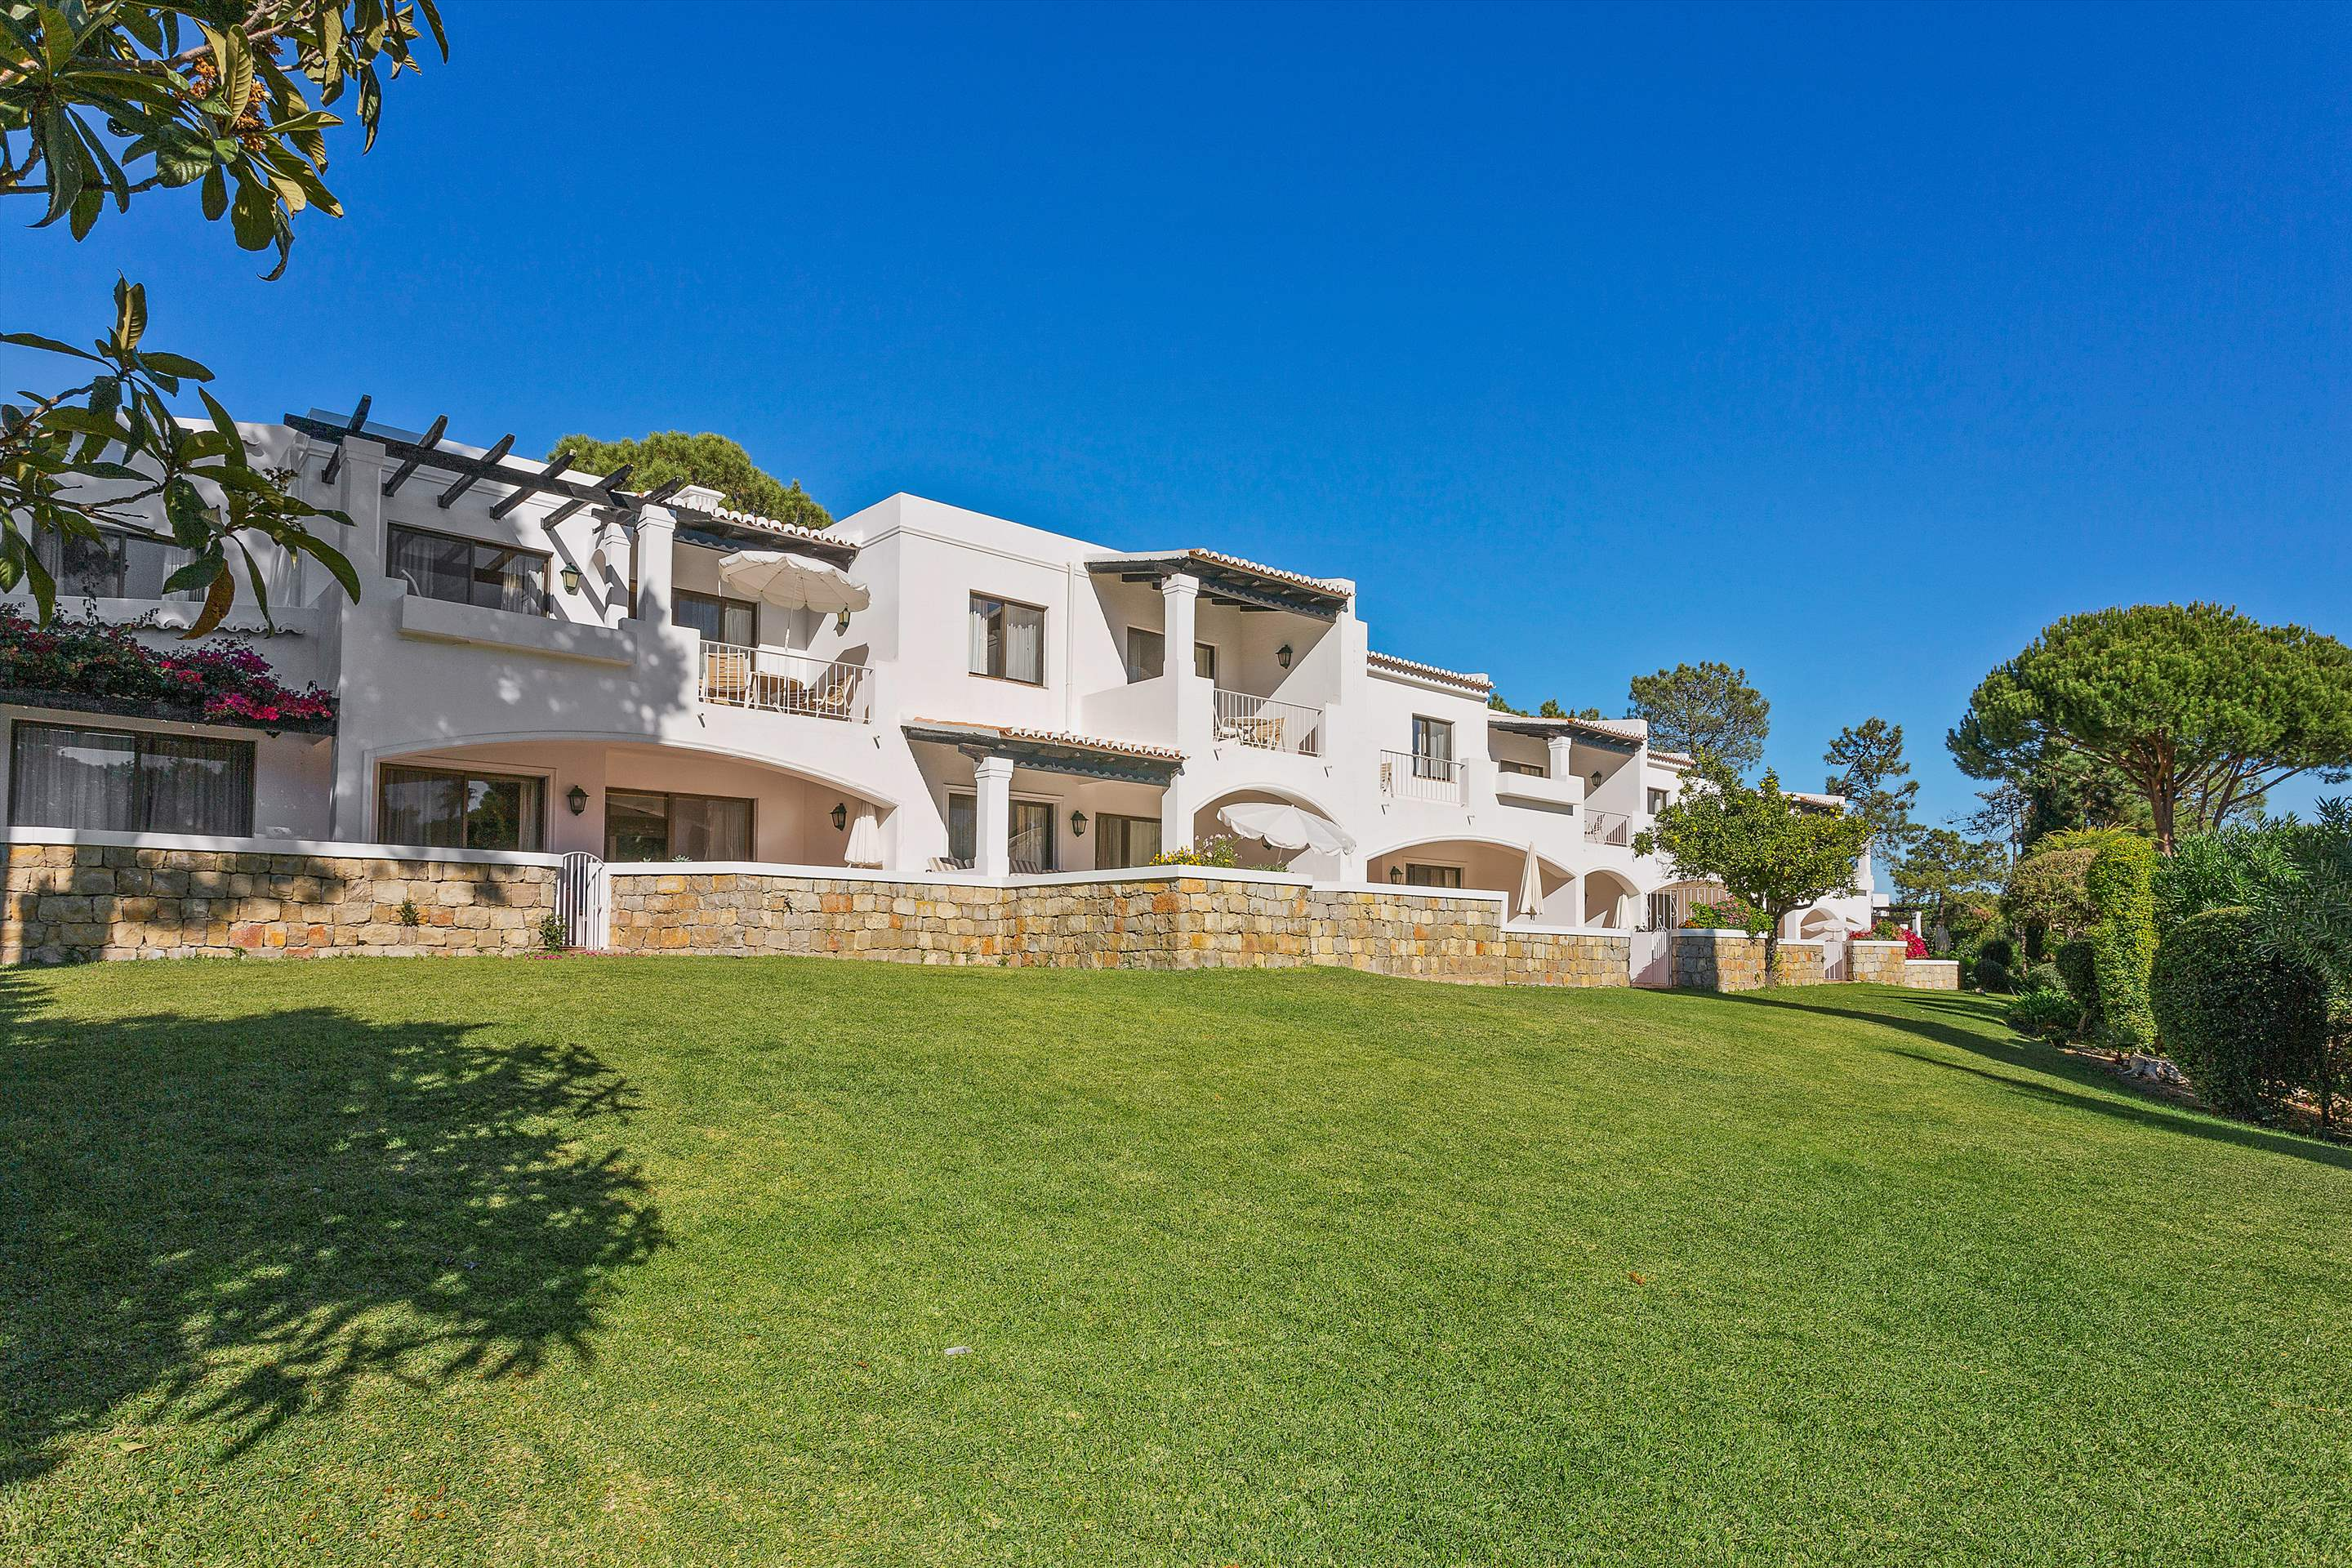 Four Seasons Country Club 2 Bed Townhouse, Superior - Thursday Arrival, 2 bedroom apartment in Four Seasons Country Club, Algarve